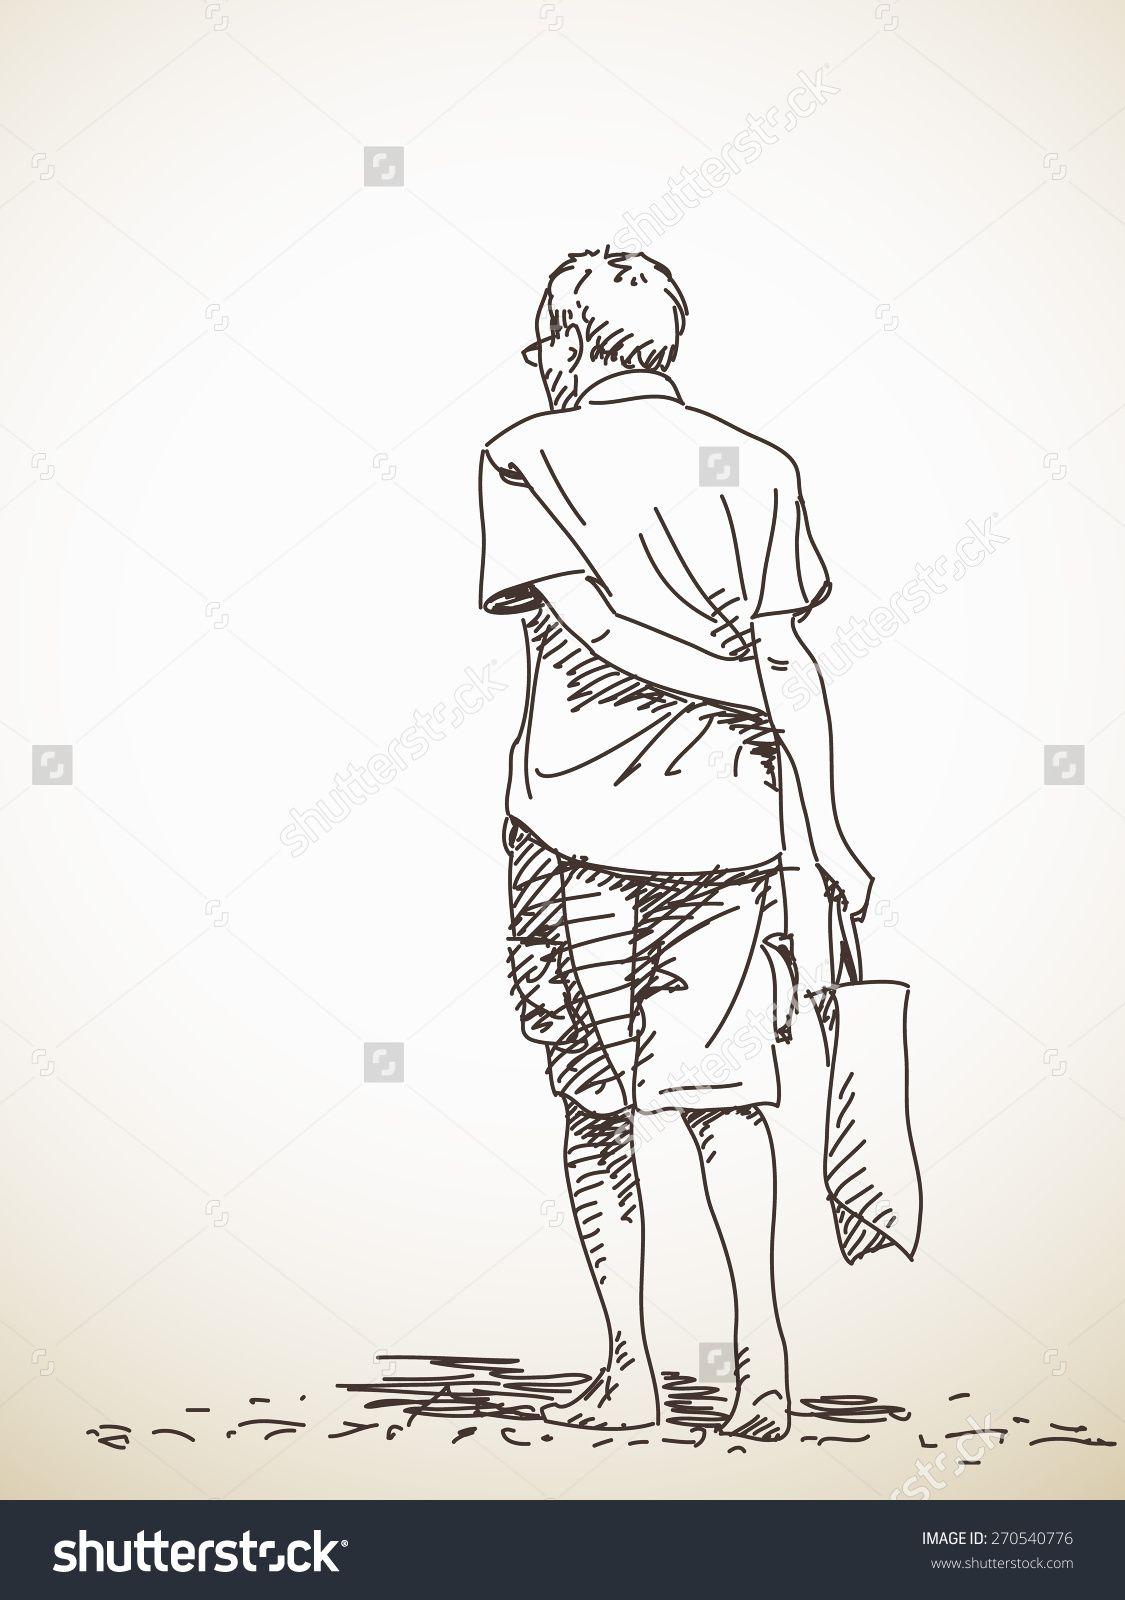 1125x1600 Sketch Of Old Man Walking Barefoot Back View Hand Drawn Vector